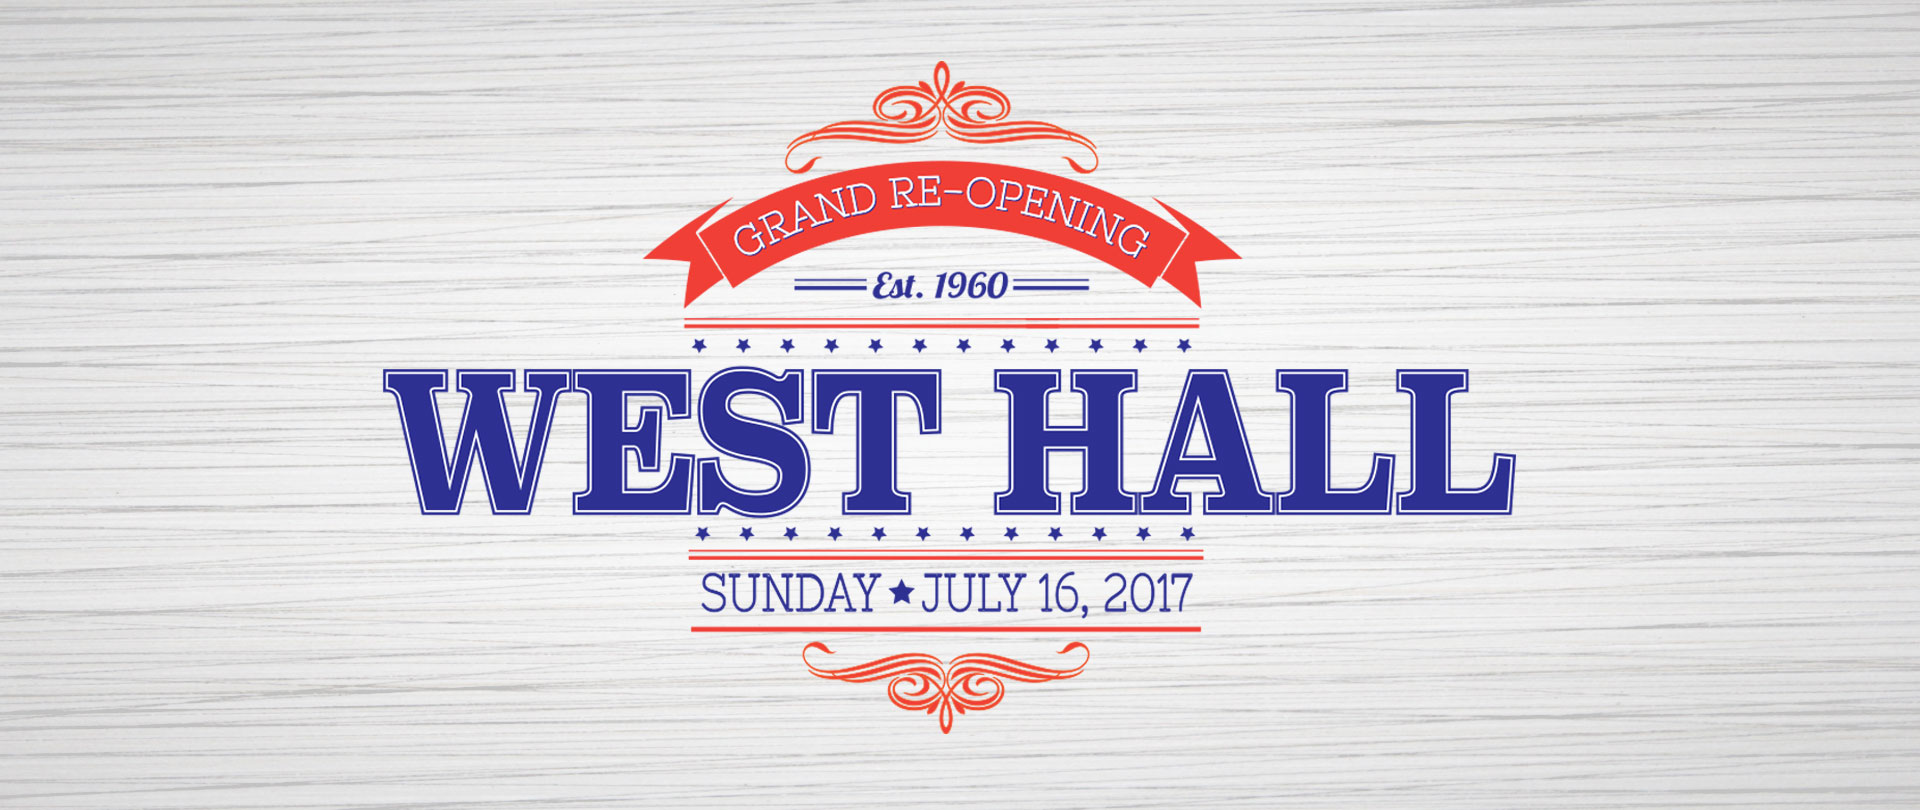 West Hall Re-Opening